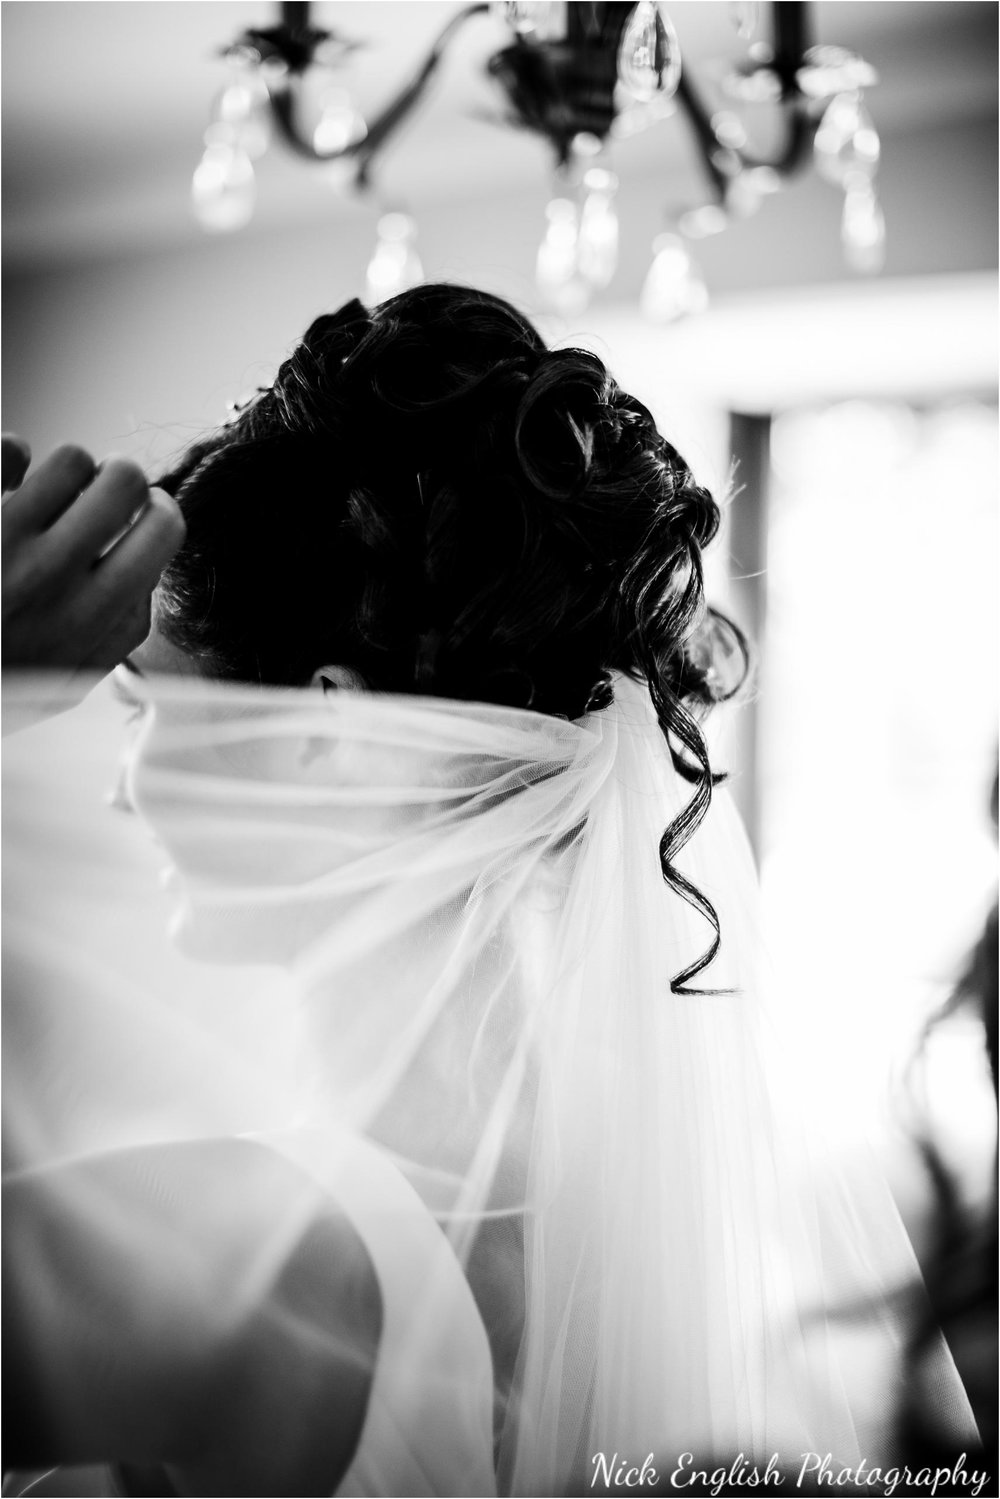 Emily David Wedding Photographs at Barton Grange Preston by Nick English Photography 31jpg.jpeg